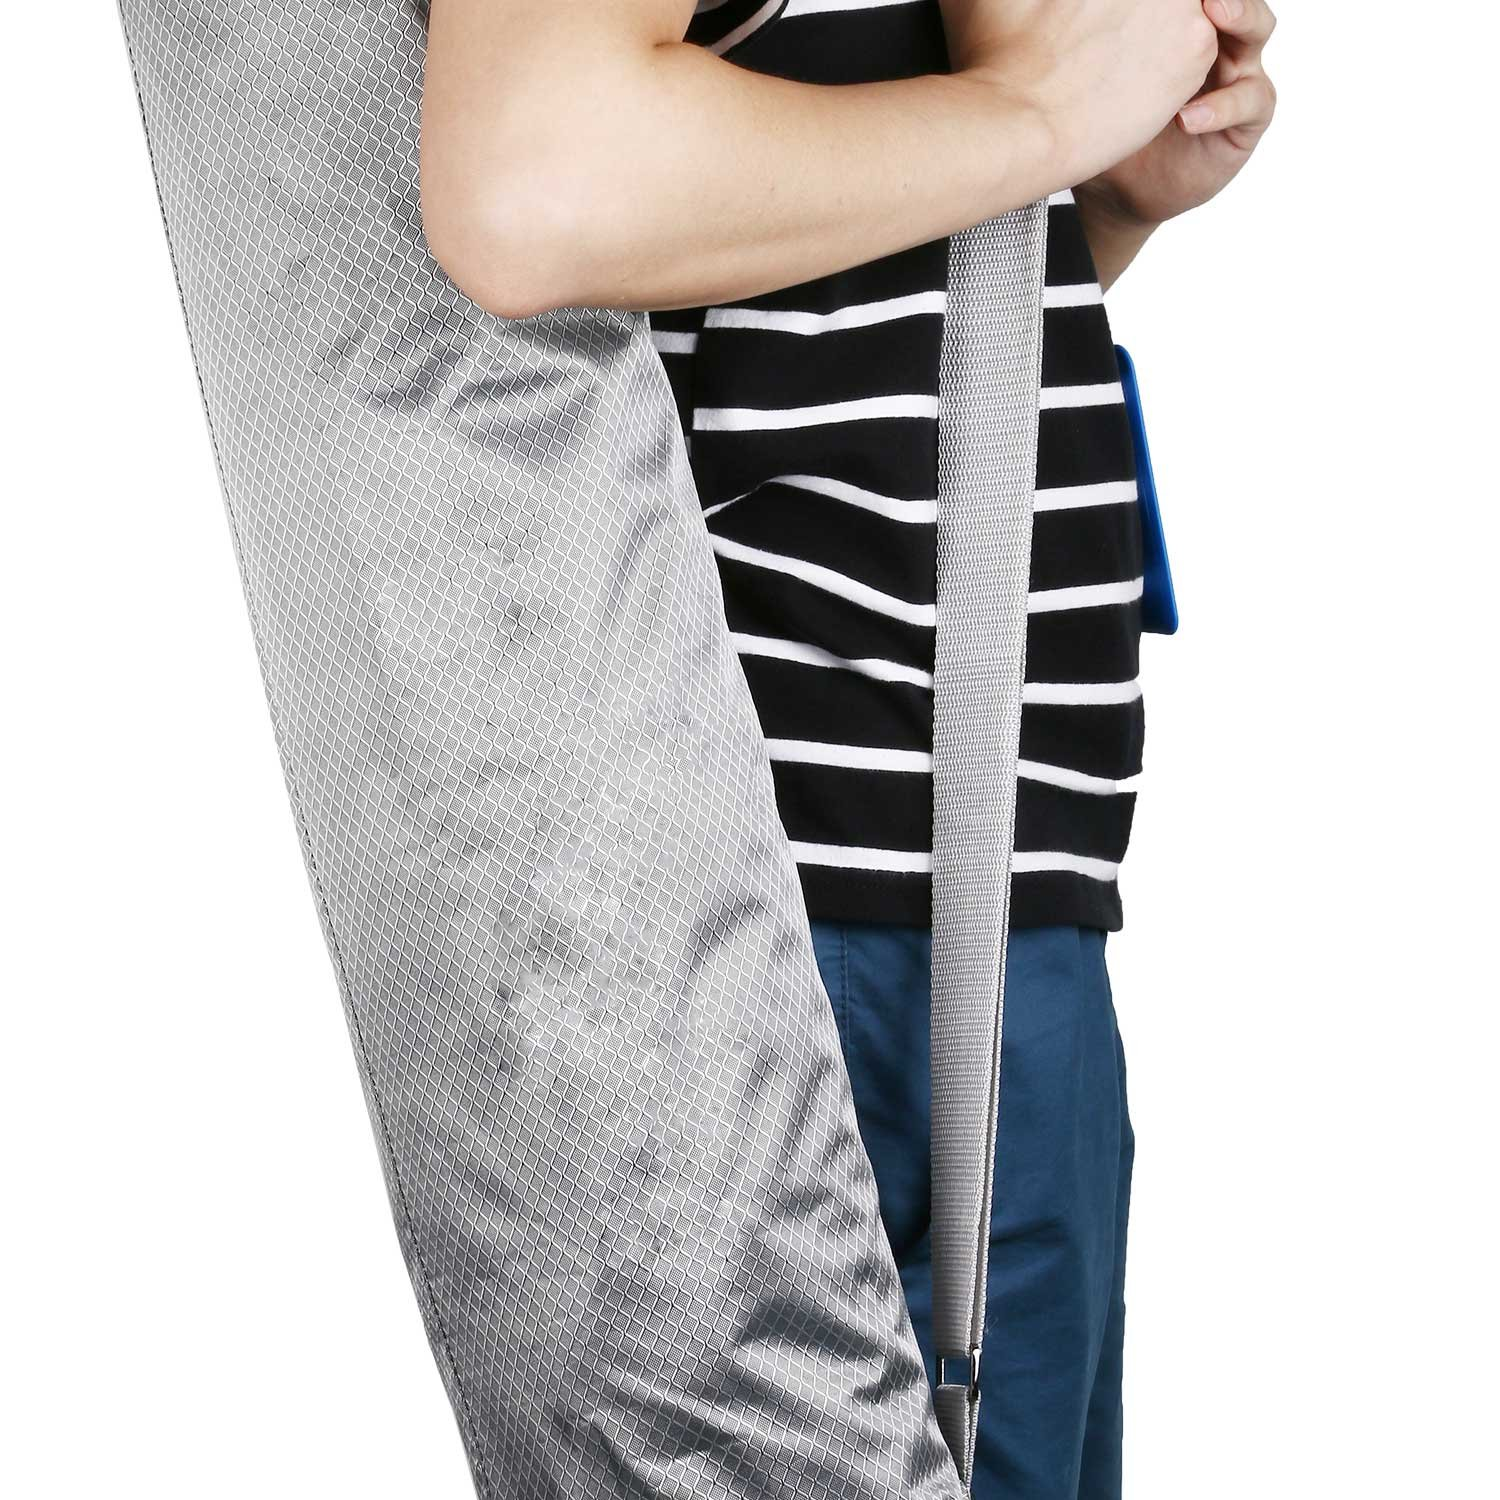 OXA Large Water Proof Yoga Mat Carry Bag with Adjustable Shoulder Strap by OXA (Image #7)